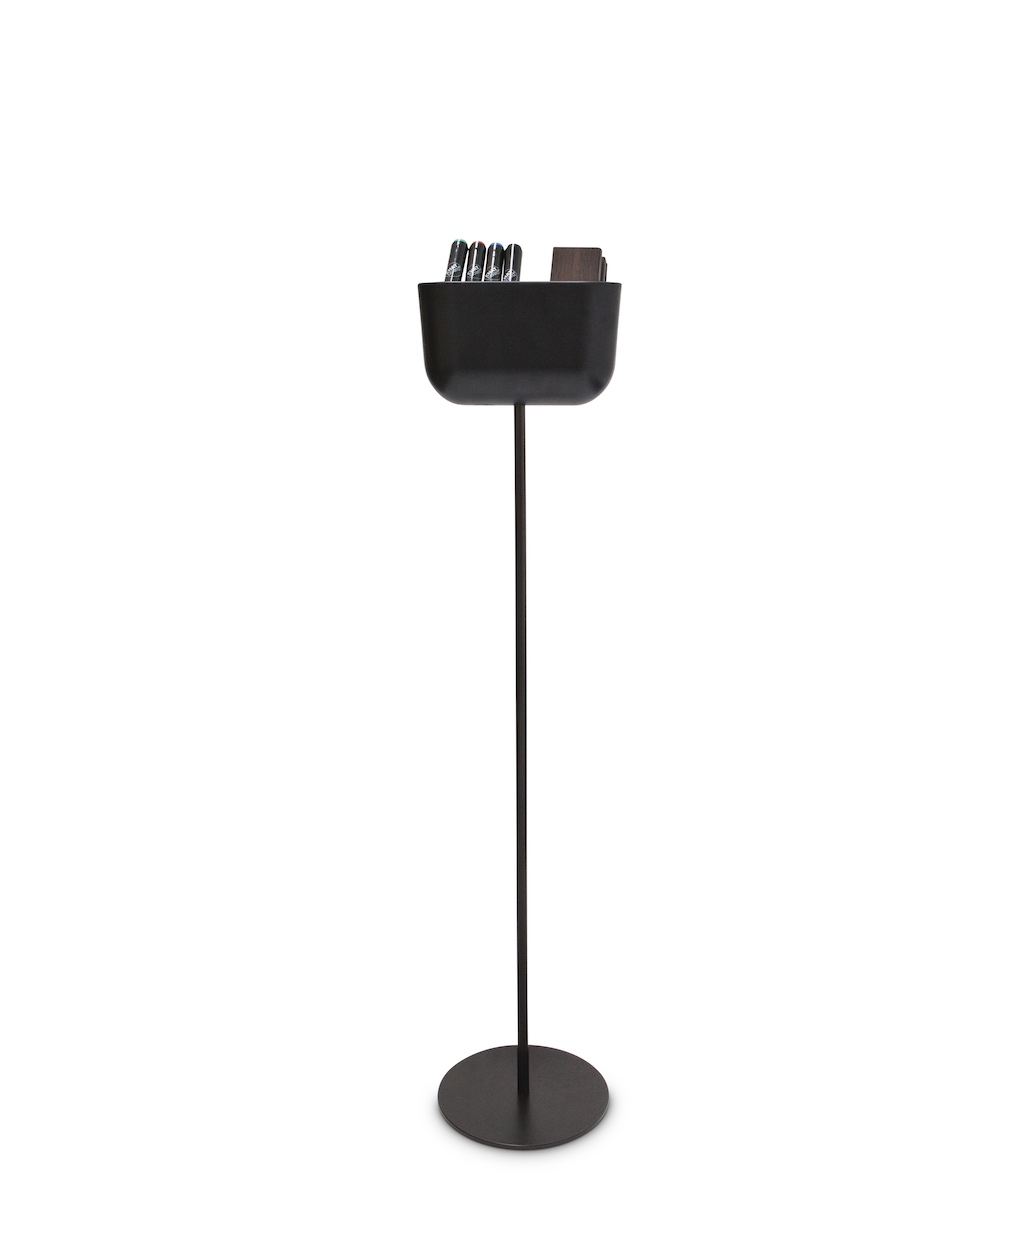 CHAT BOARD®Storage Unit Floor stand